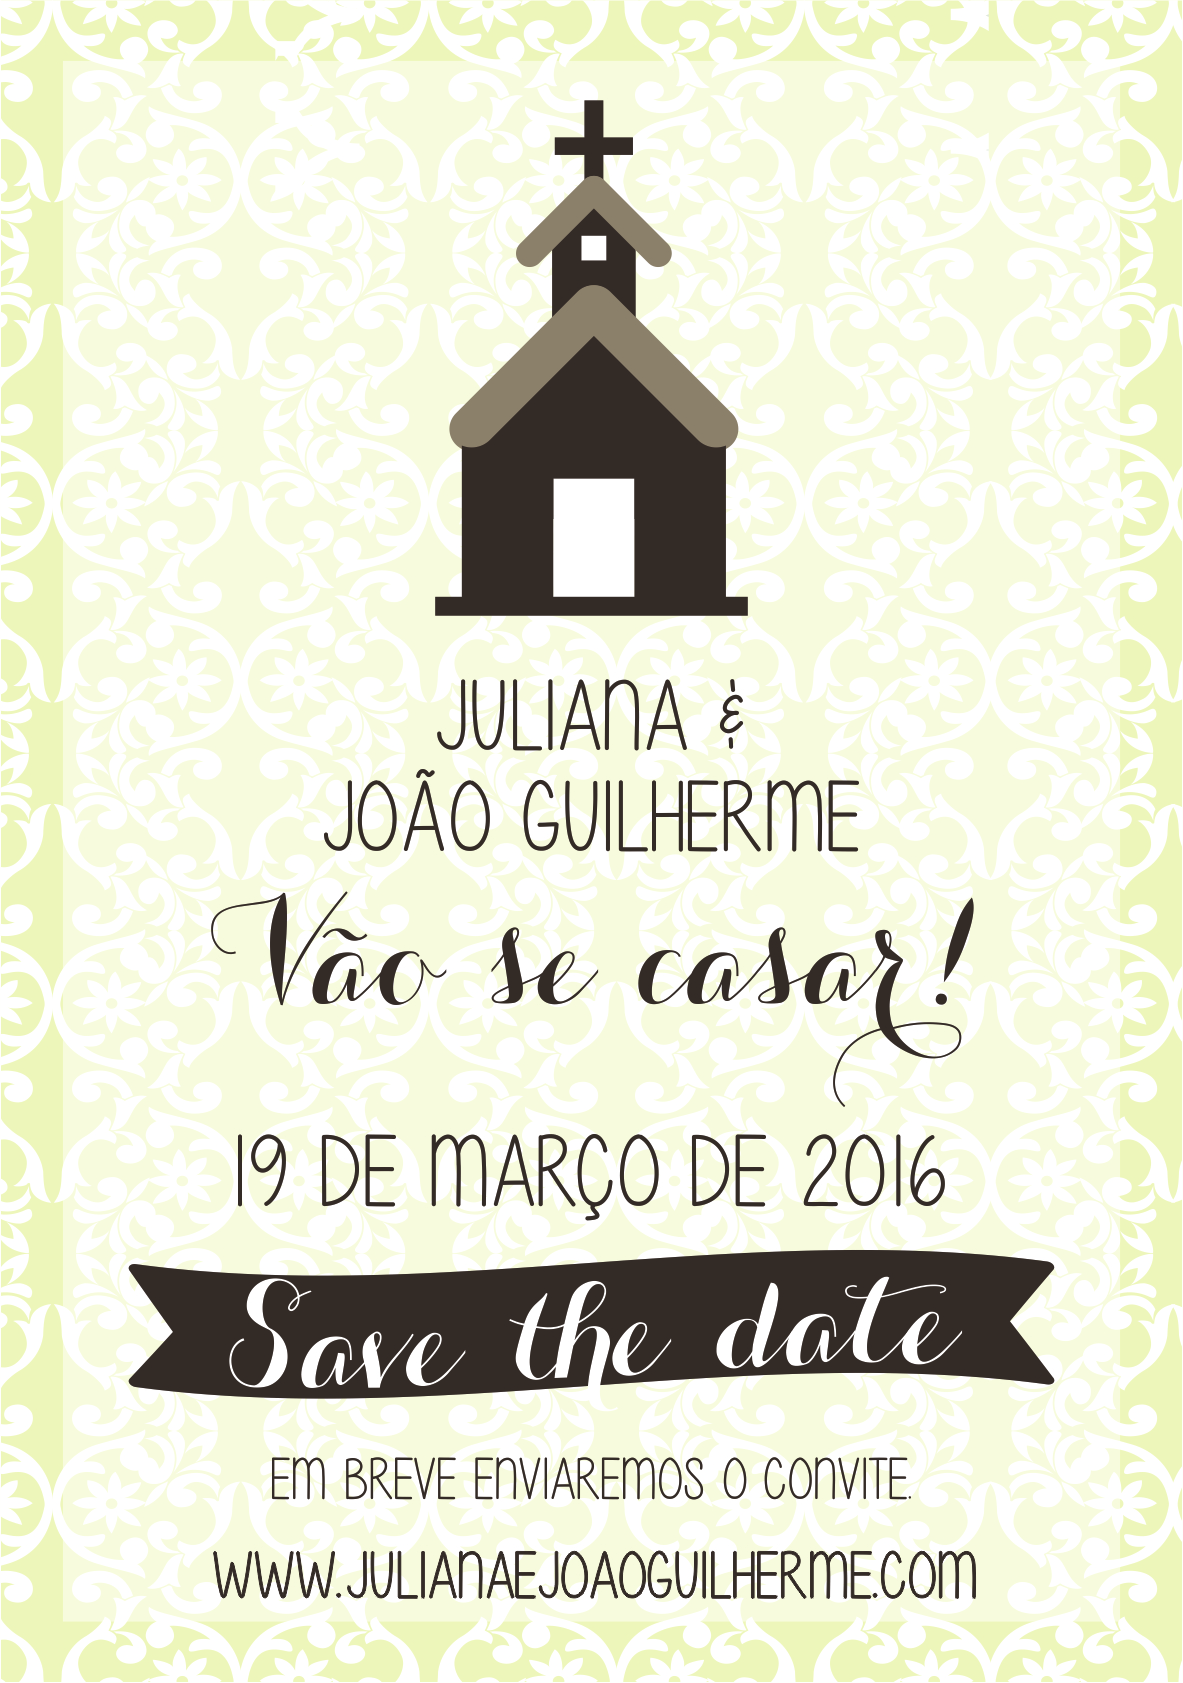 Save the date_Juliana&João Guilherme.jpg